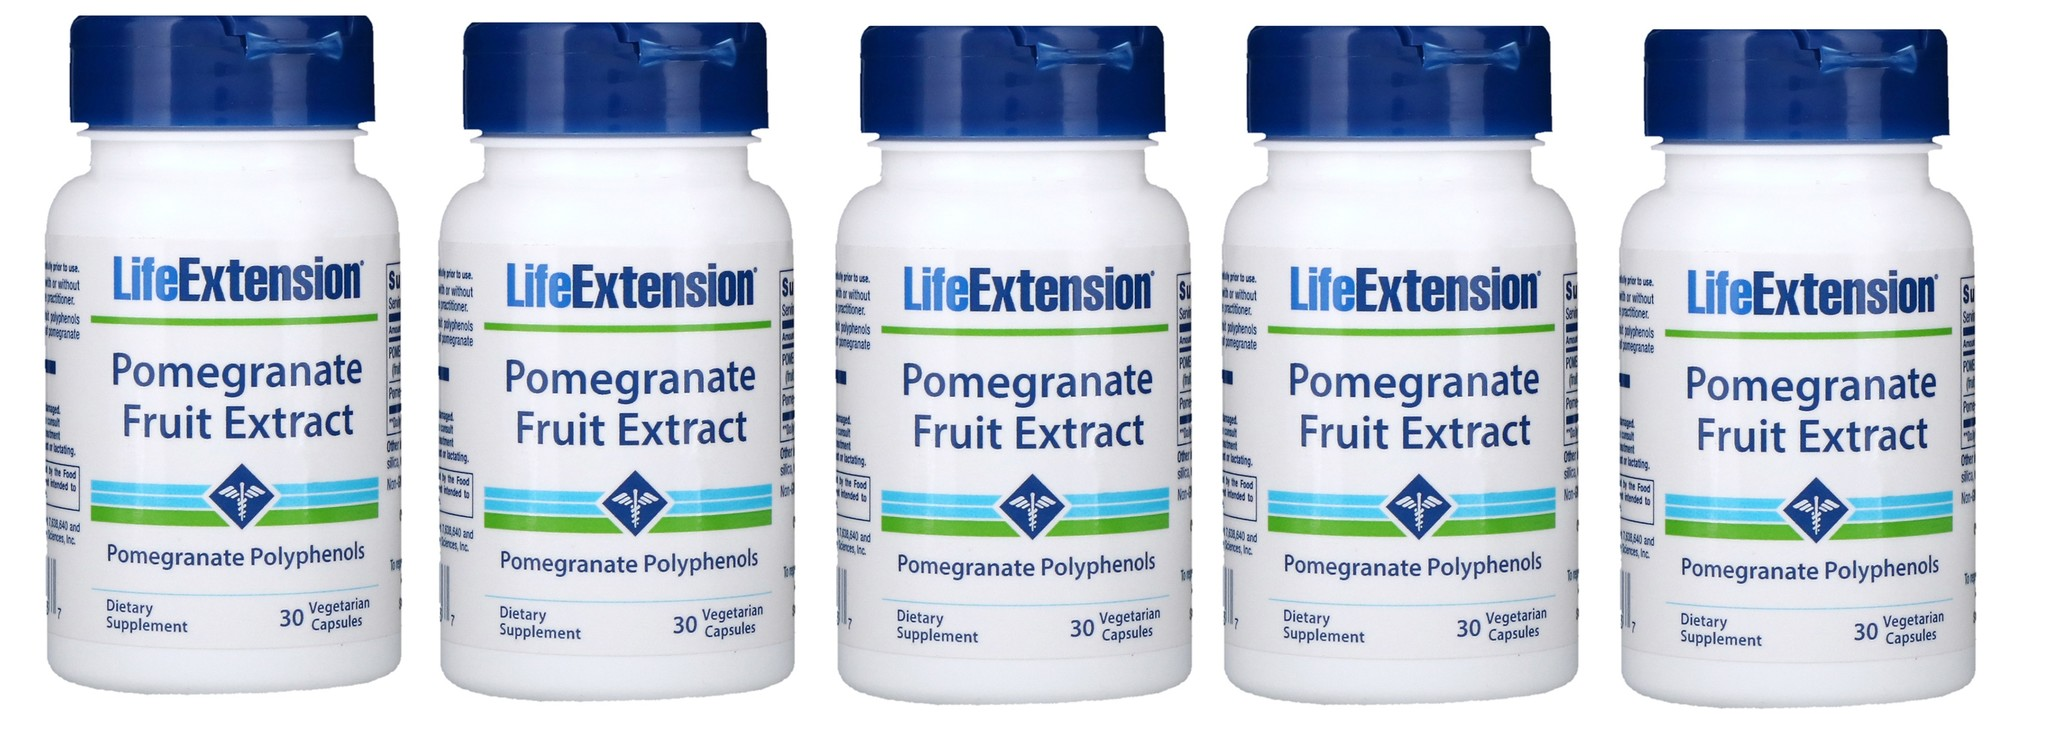 Life Extension Pomegranate Fruit Extract, 30 Vegetarian Capsules, 5-packs